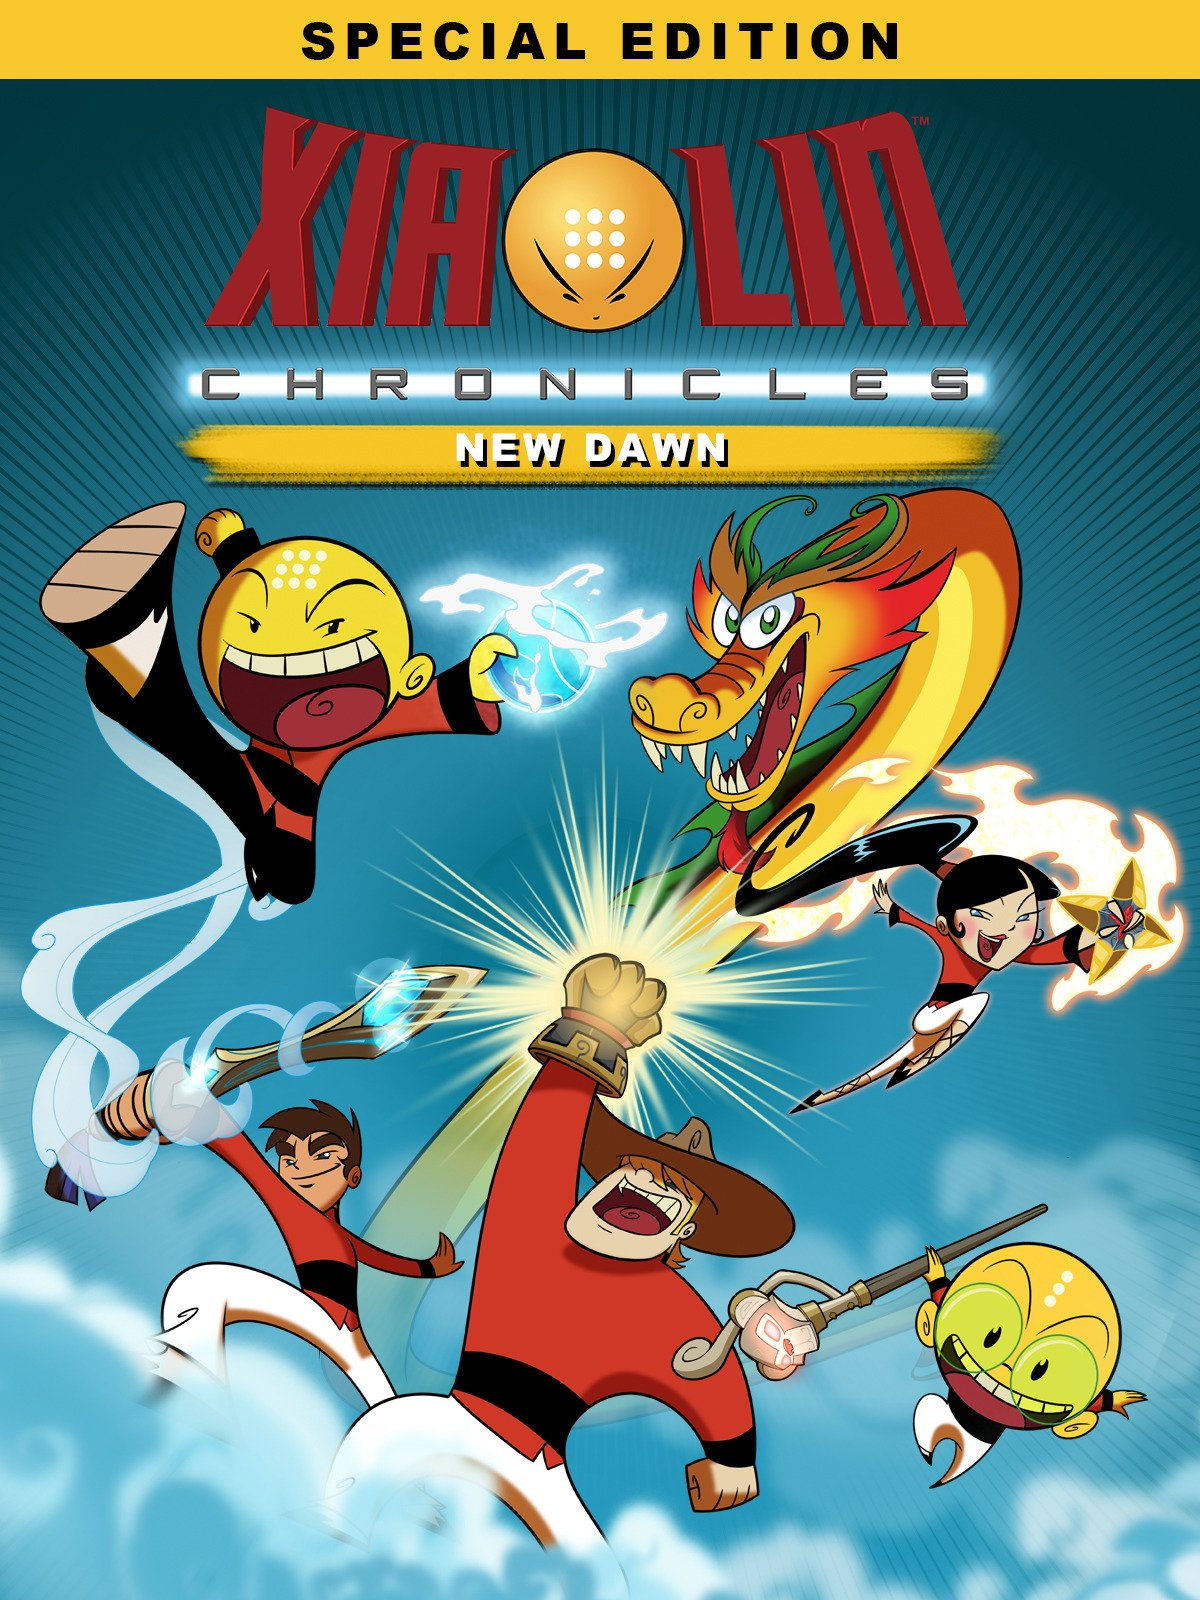 Xiaolin Chronicles: Special Edition on Amazon Prime Instant Video UK